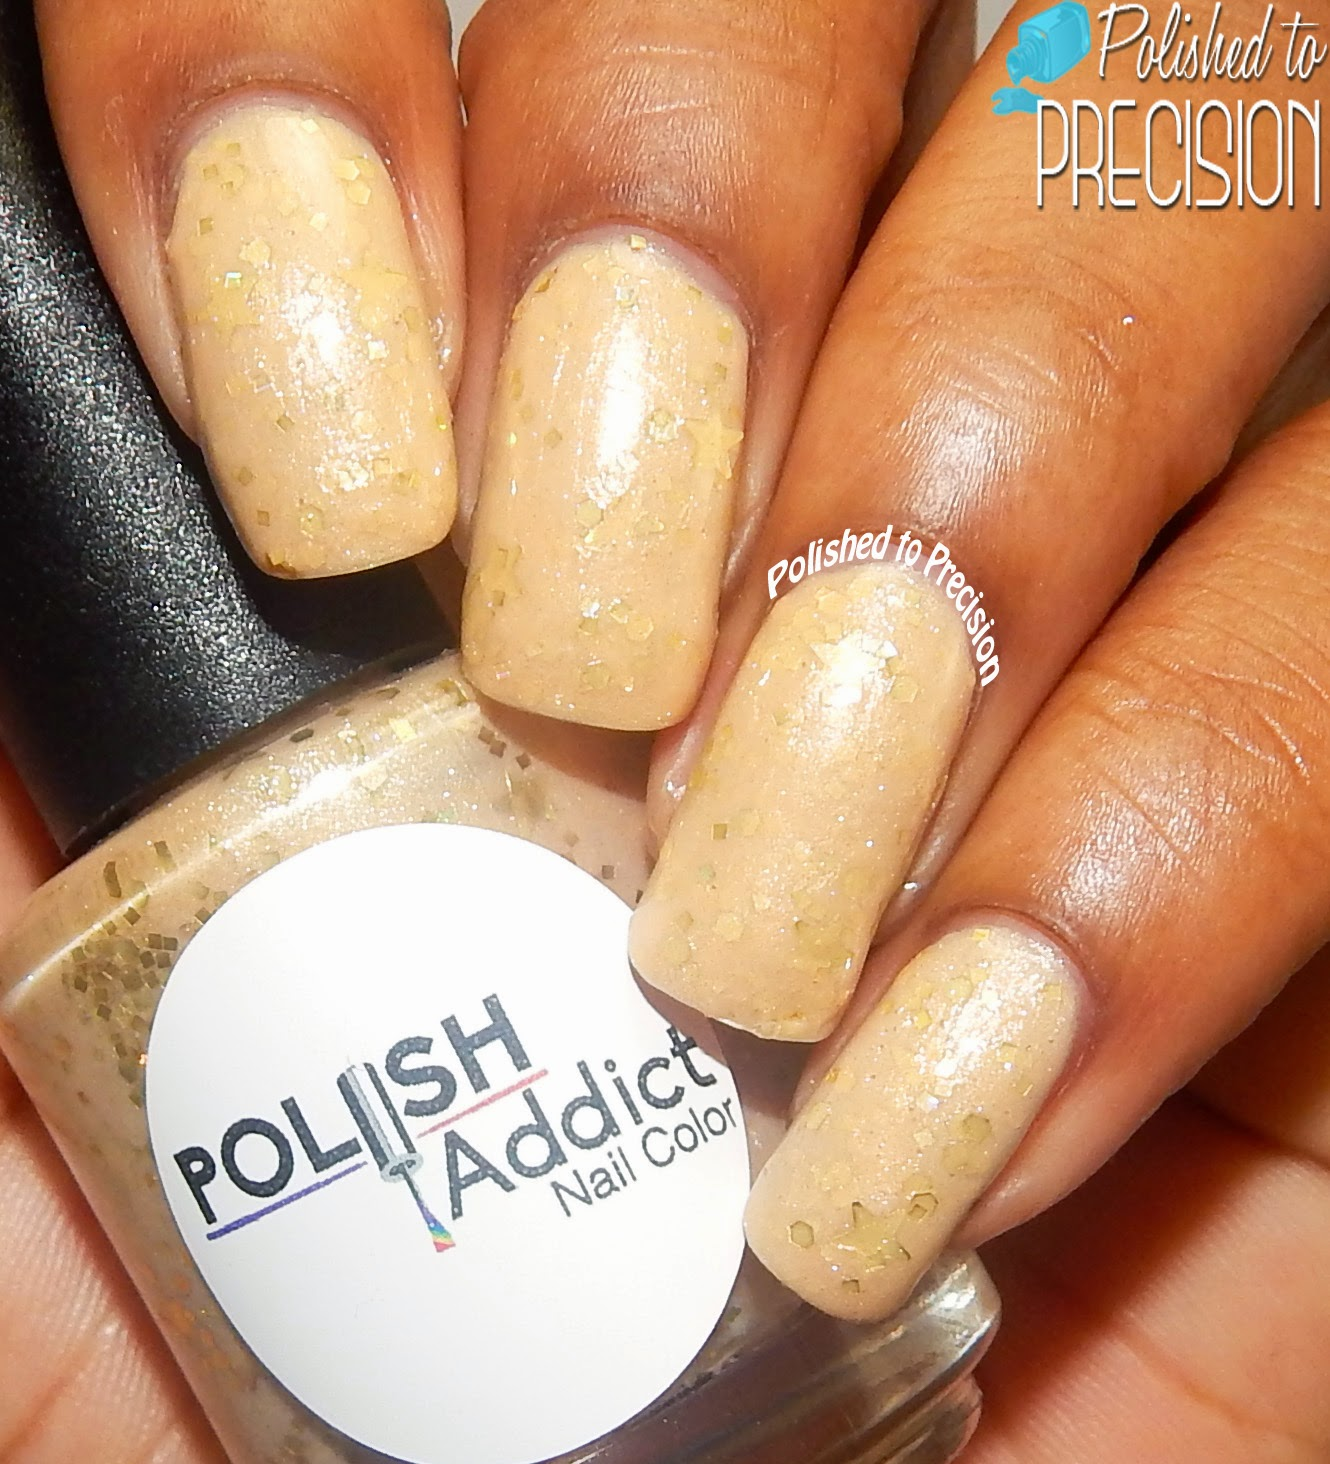 Polish-Addict-Nail-Color-Blondes-Have-More-Fun